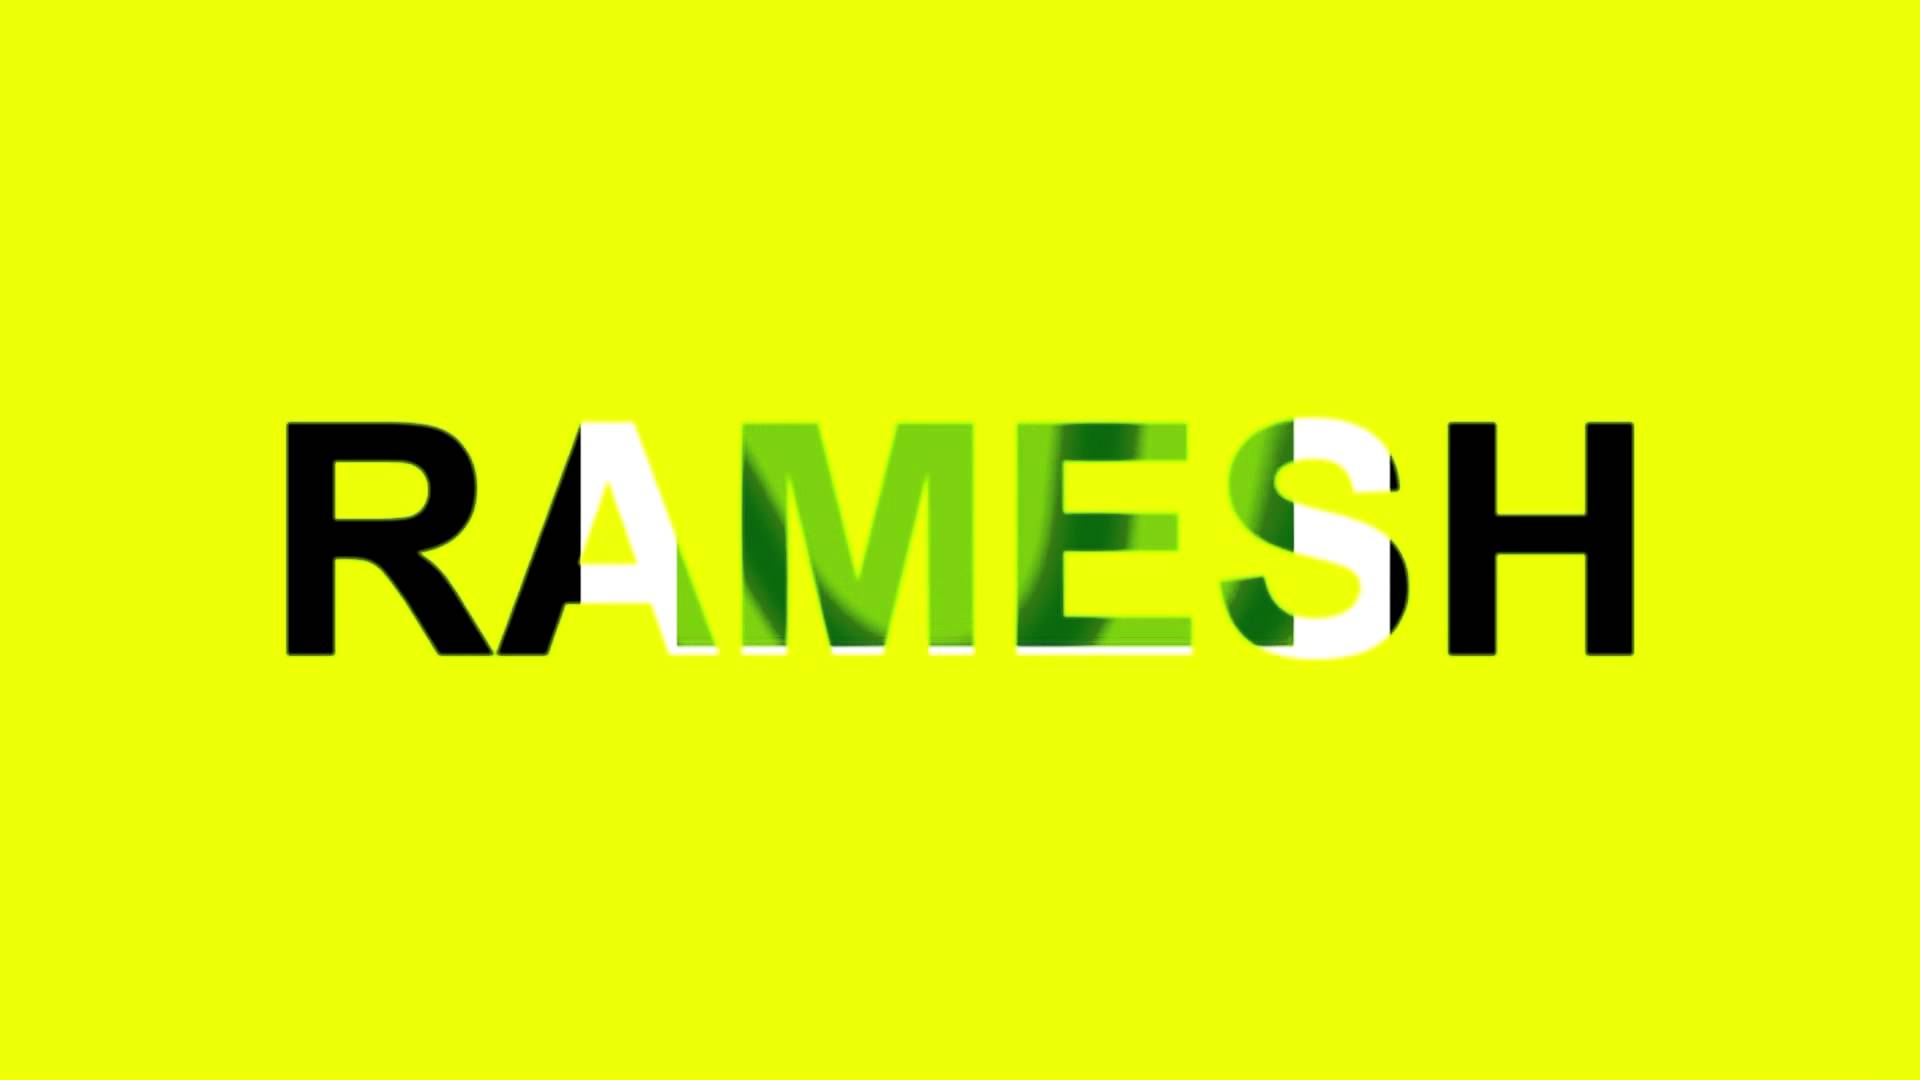 download ramesh name wallpaper gallery